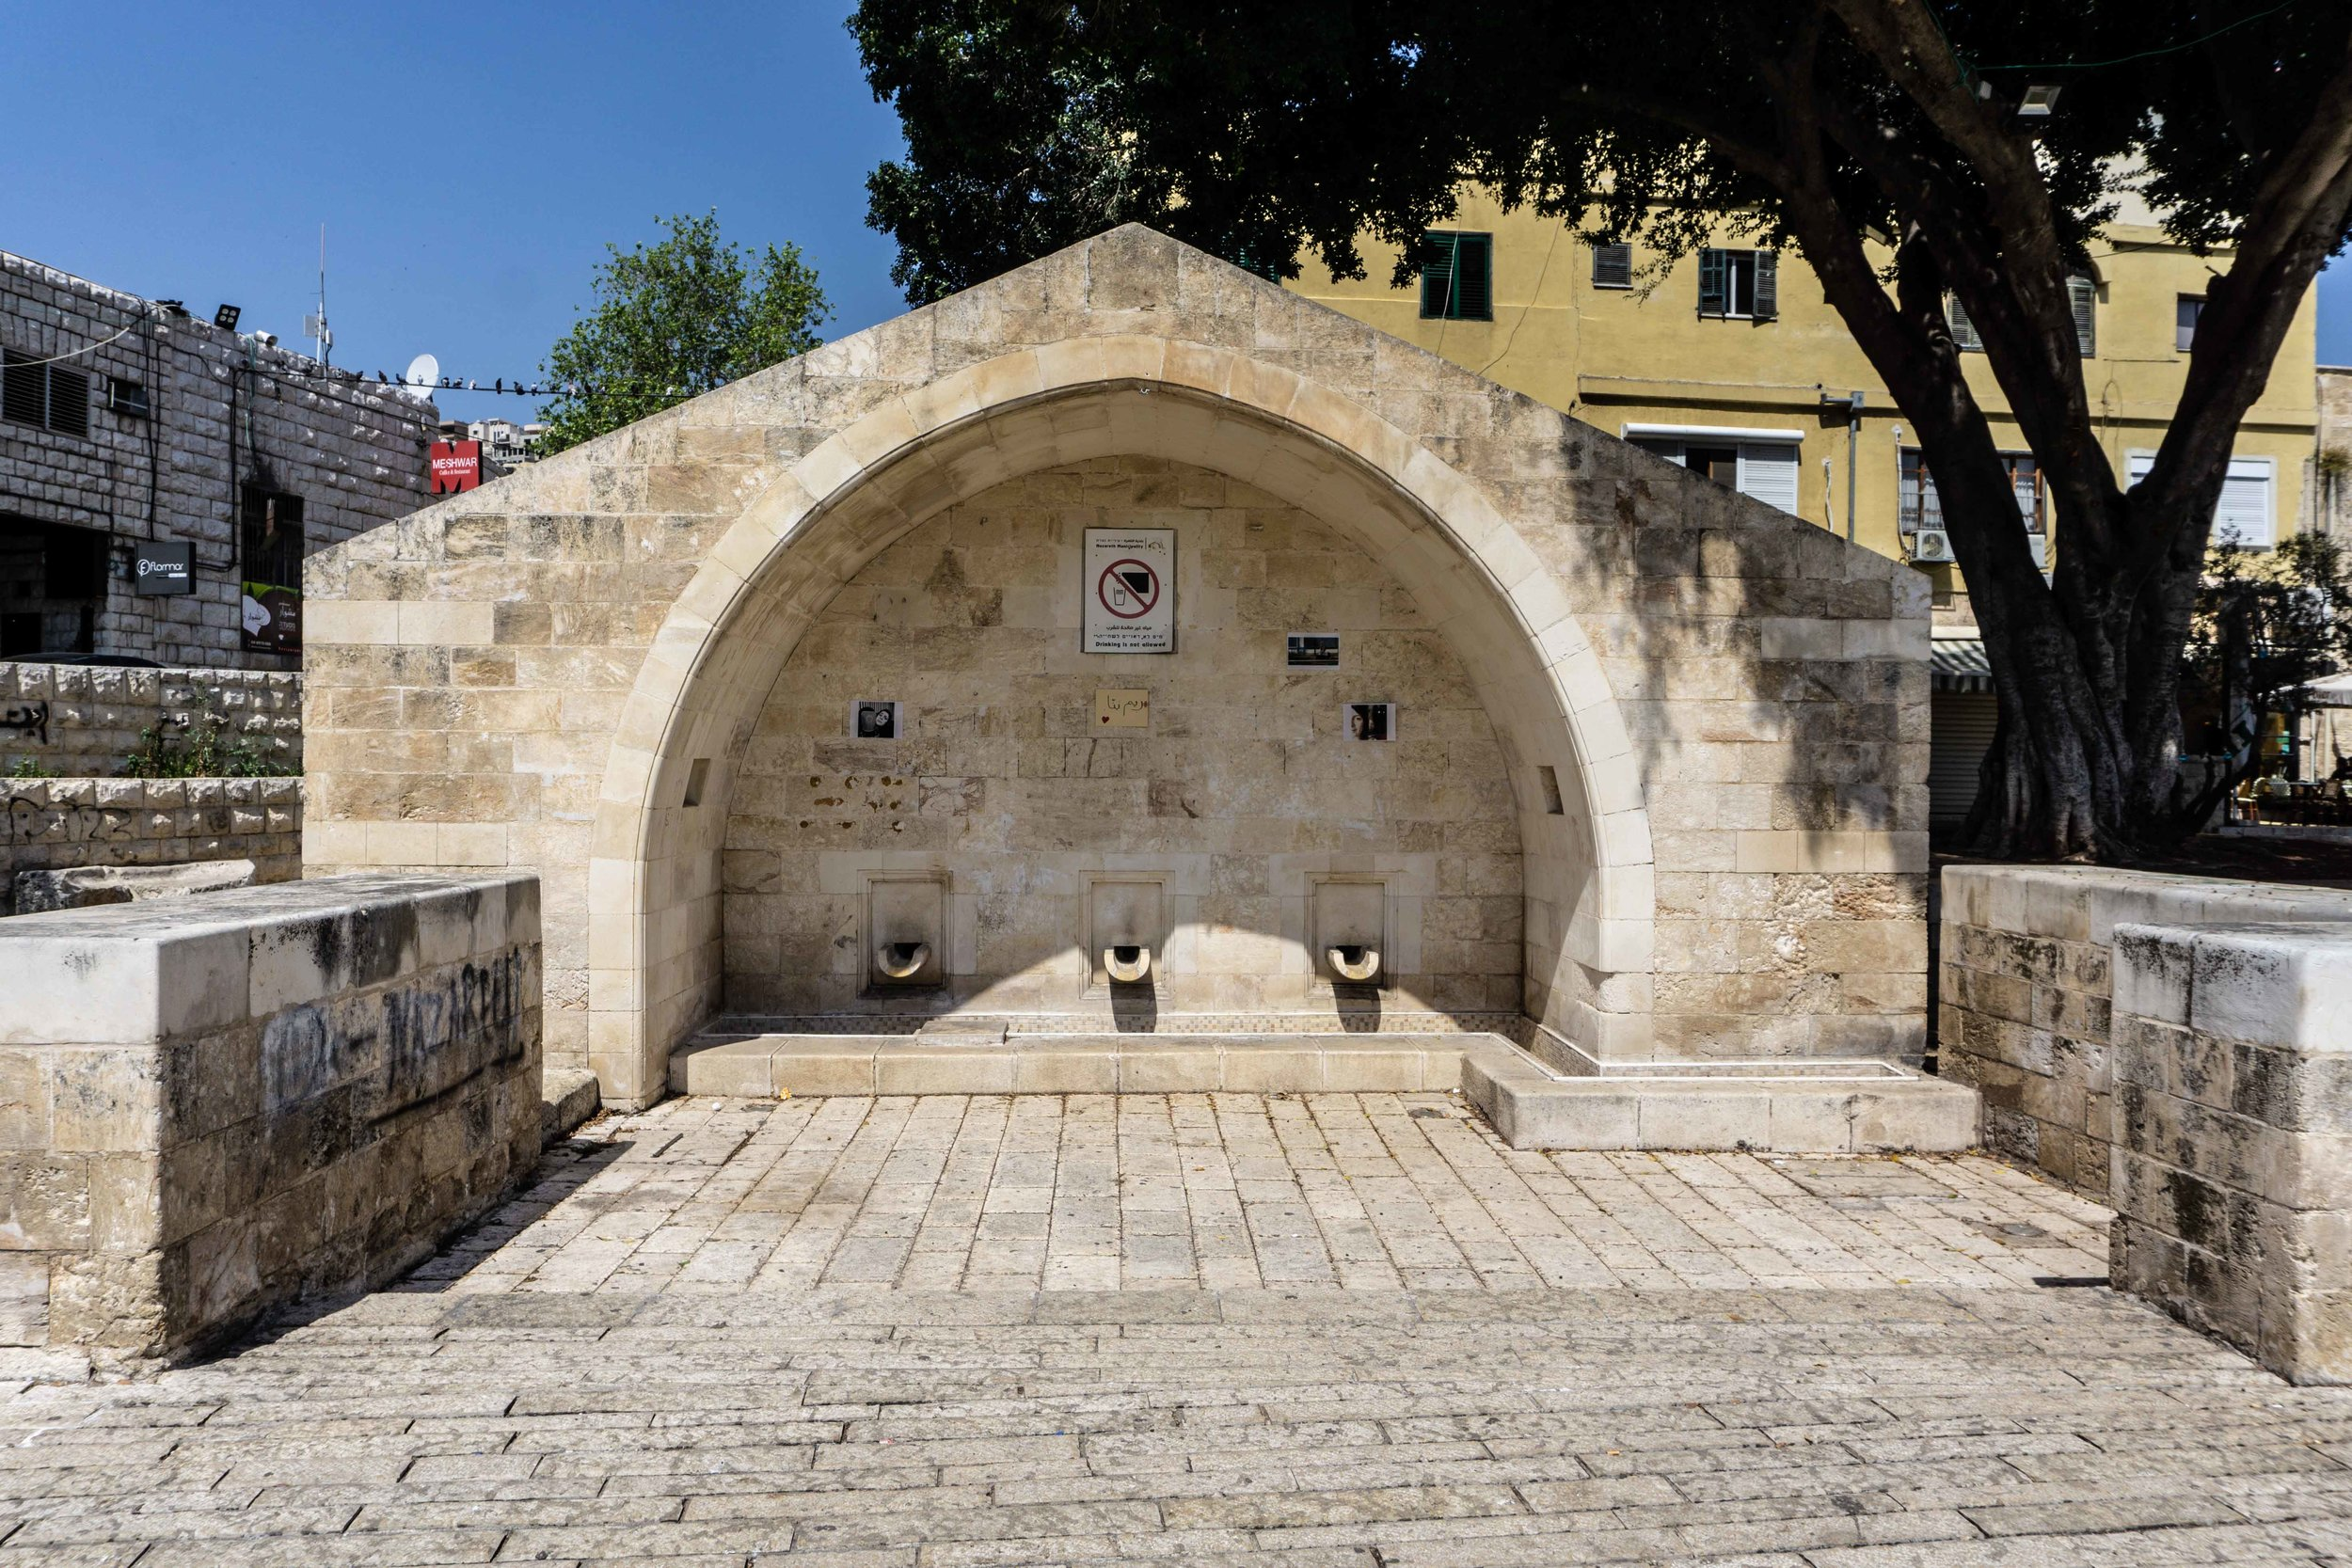 Mary's Well in Nazareth